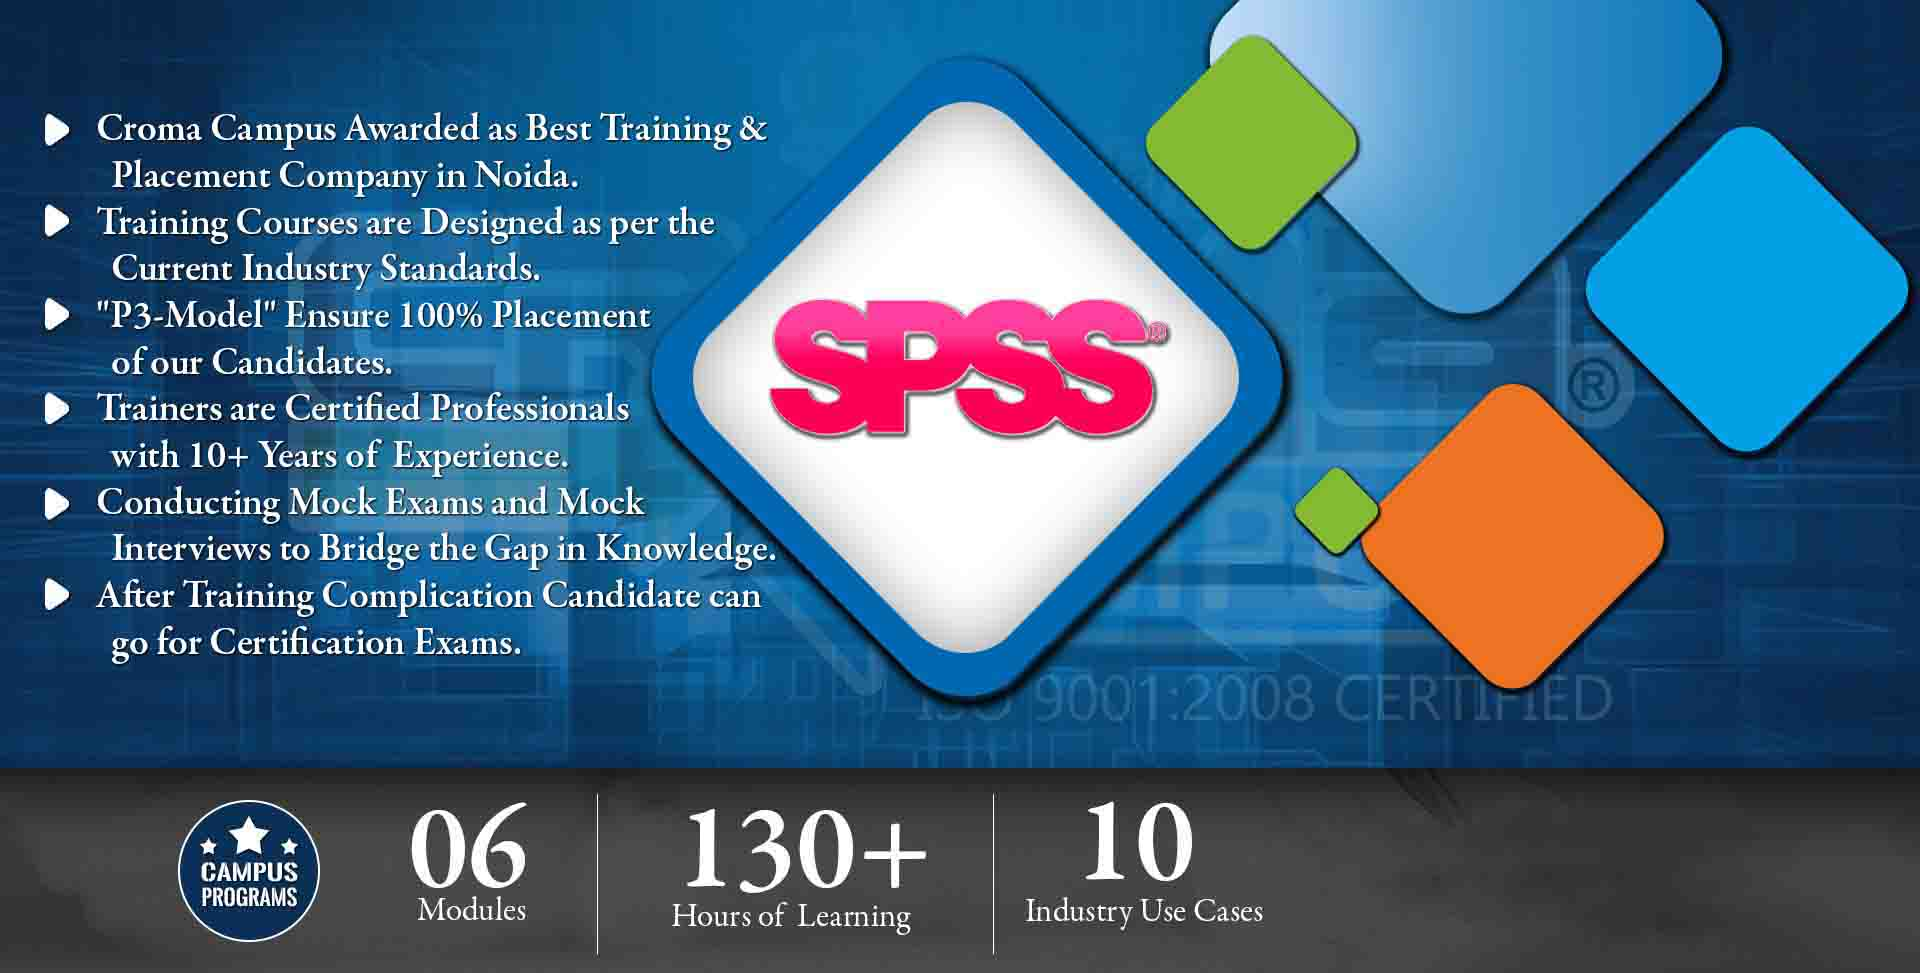 SPSS Training in Noida- Croma Campus